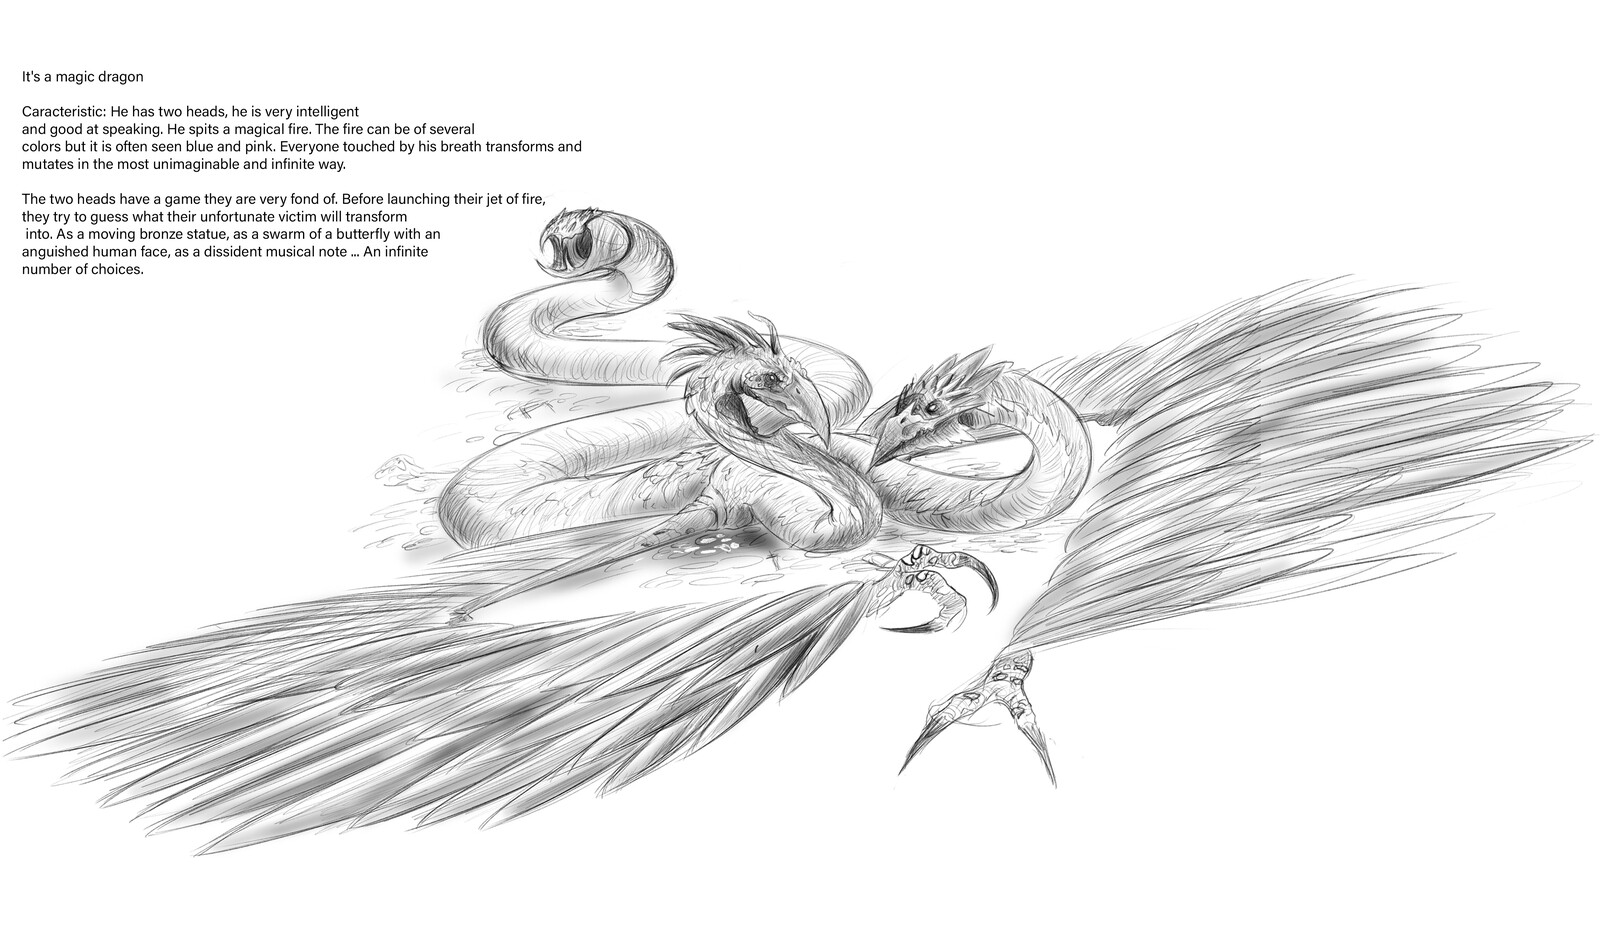 Greatly inspired by the dragons of Tzeentch: Warhammer